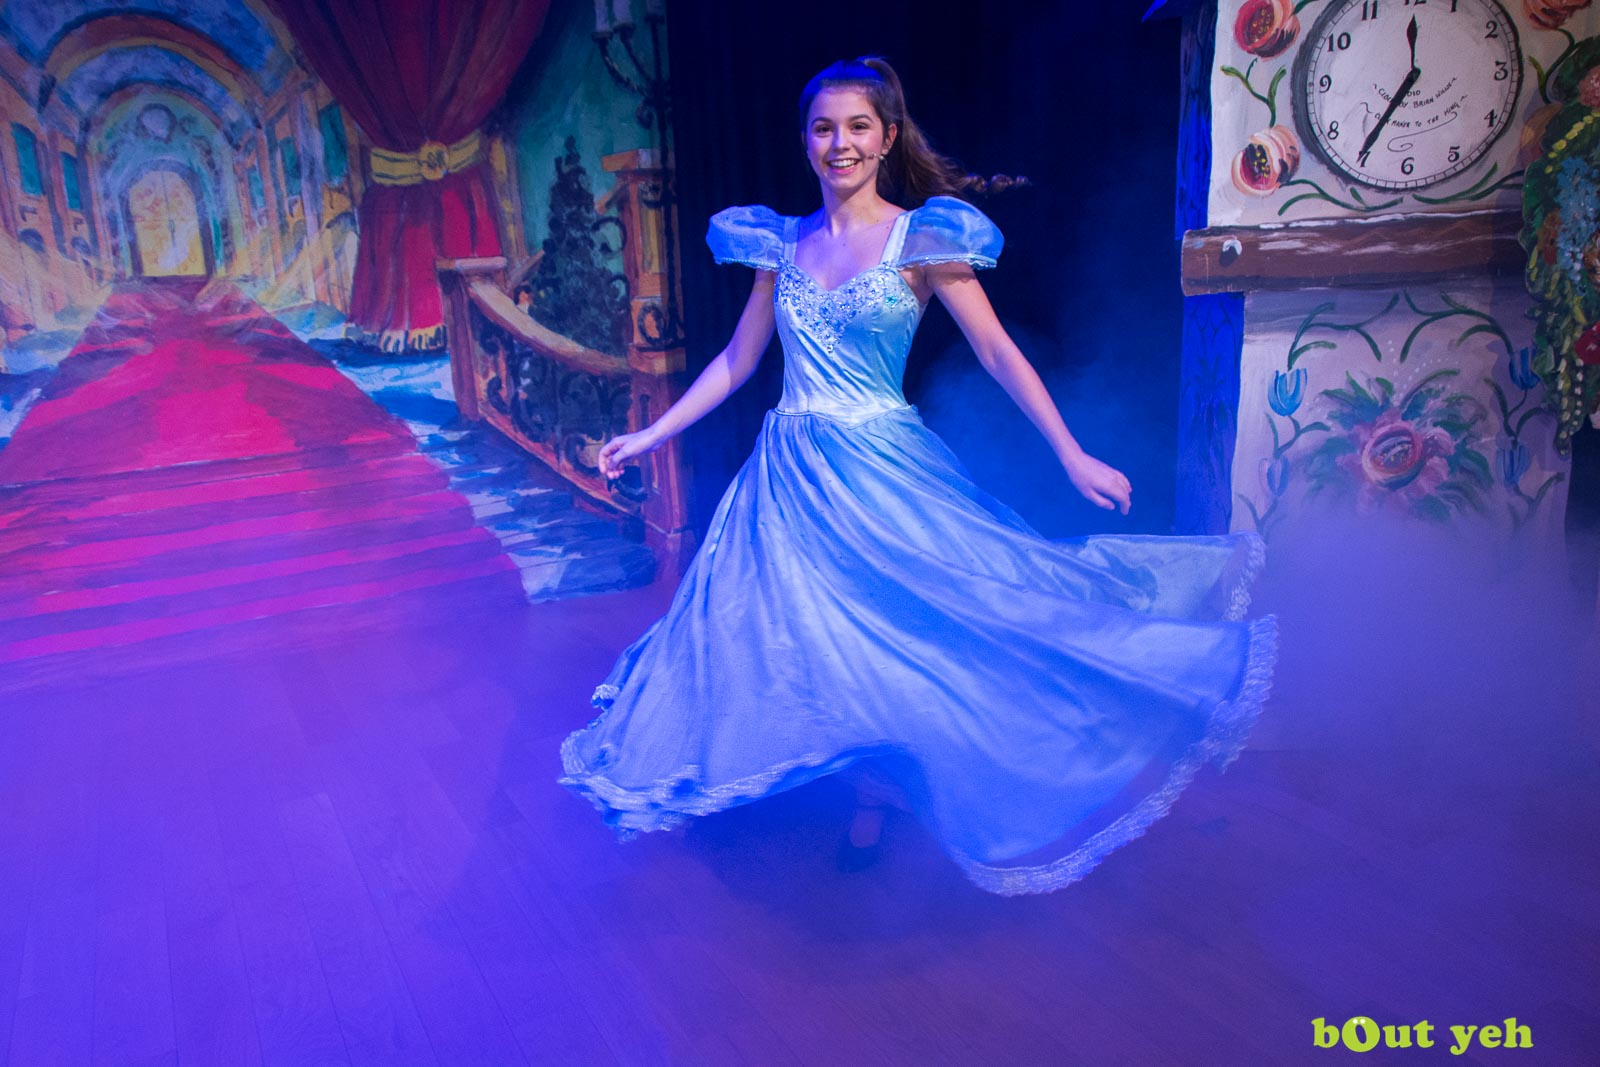 PR photographers Belfast portfolio photo 9954 of Cinderella pantomime at the Old Courthouse Theatre Antrim - Bout Yeh photography and video production services Belfast, Northern Ireland